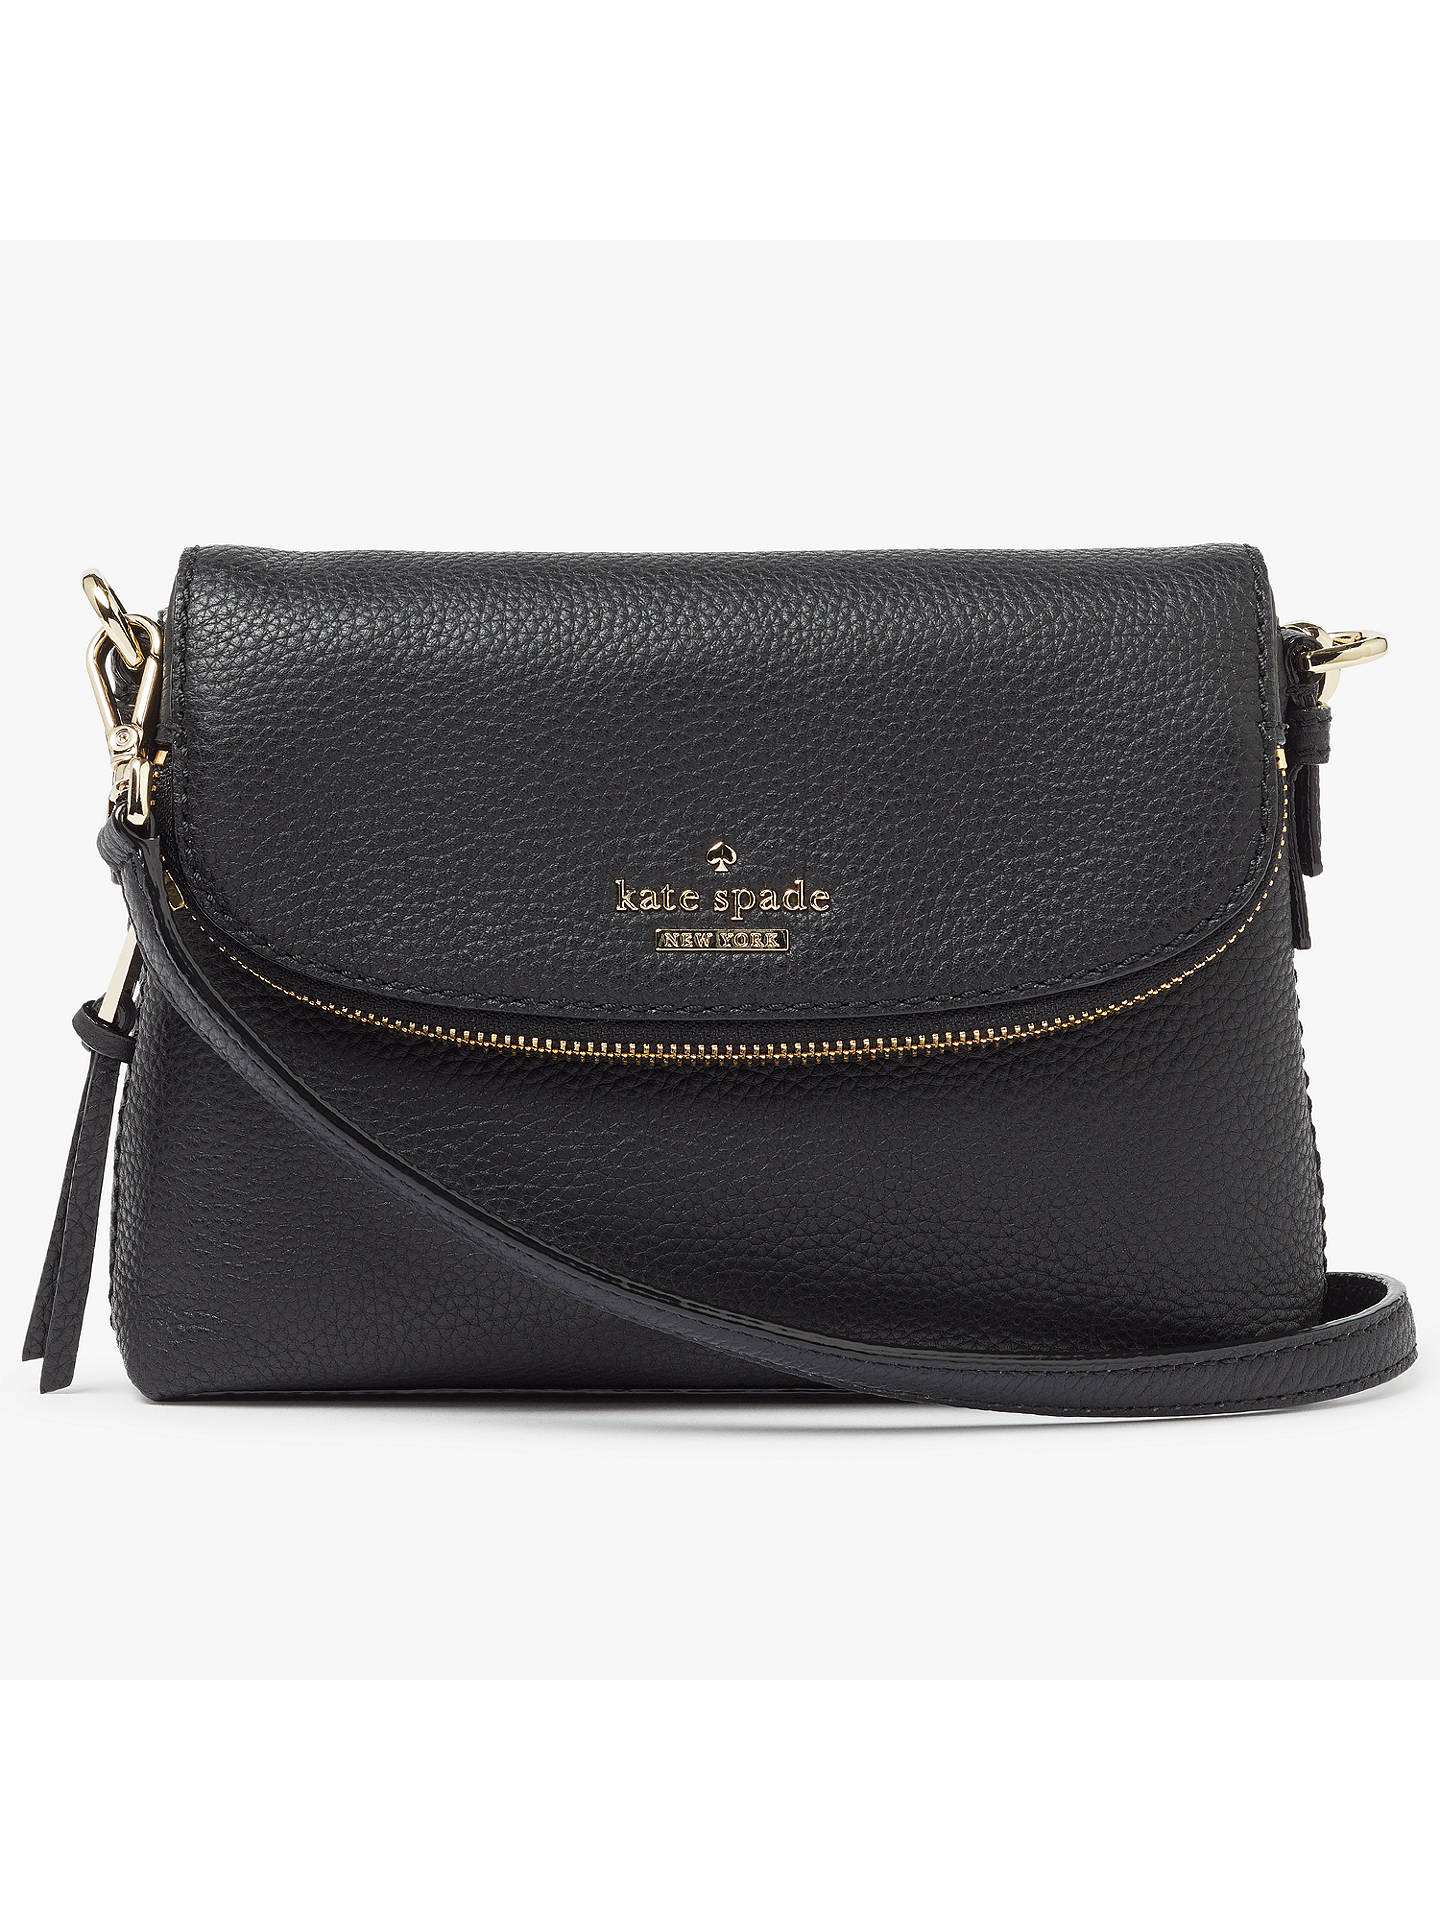 d8493c511 Buy kate spade new york Jackson Street Harlyn Small Leather Cross Body Bag,  Black Online ...